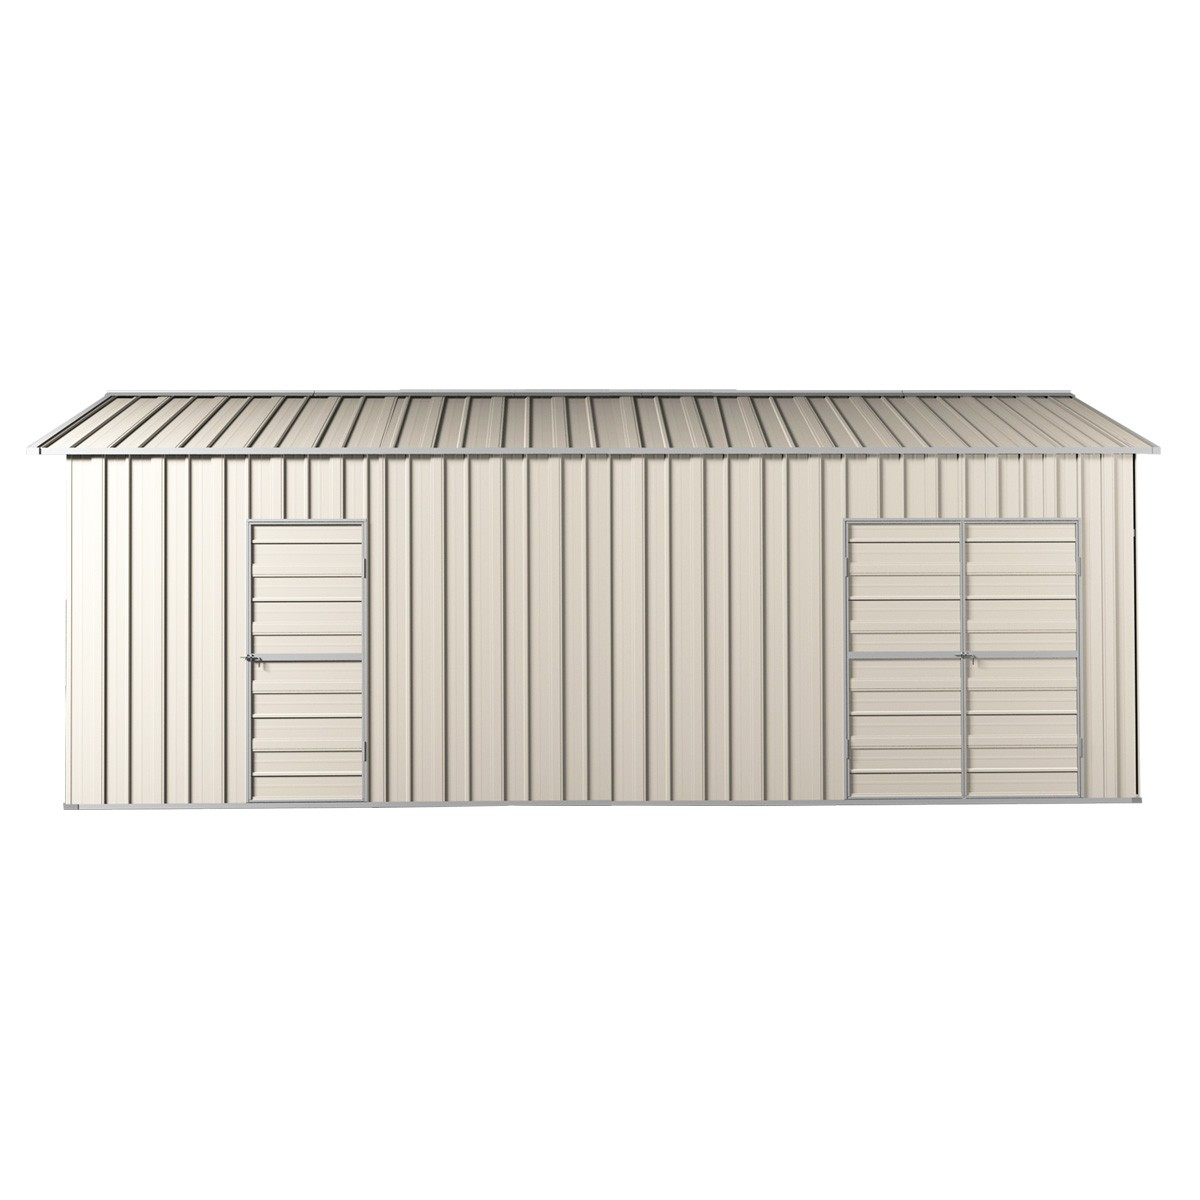 Double Garage Design In Sidcup: Garage Workshop Shed 3.6m X 7.6m X 3m Side Double Doors